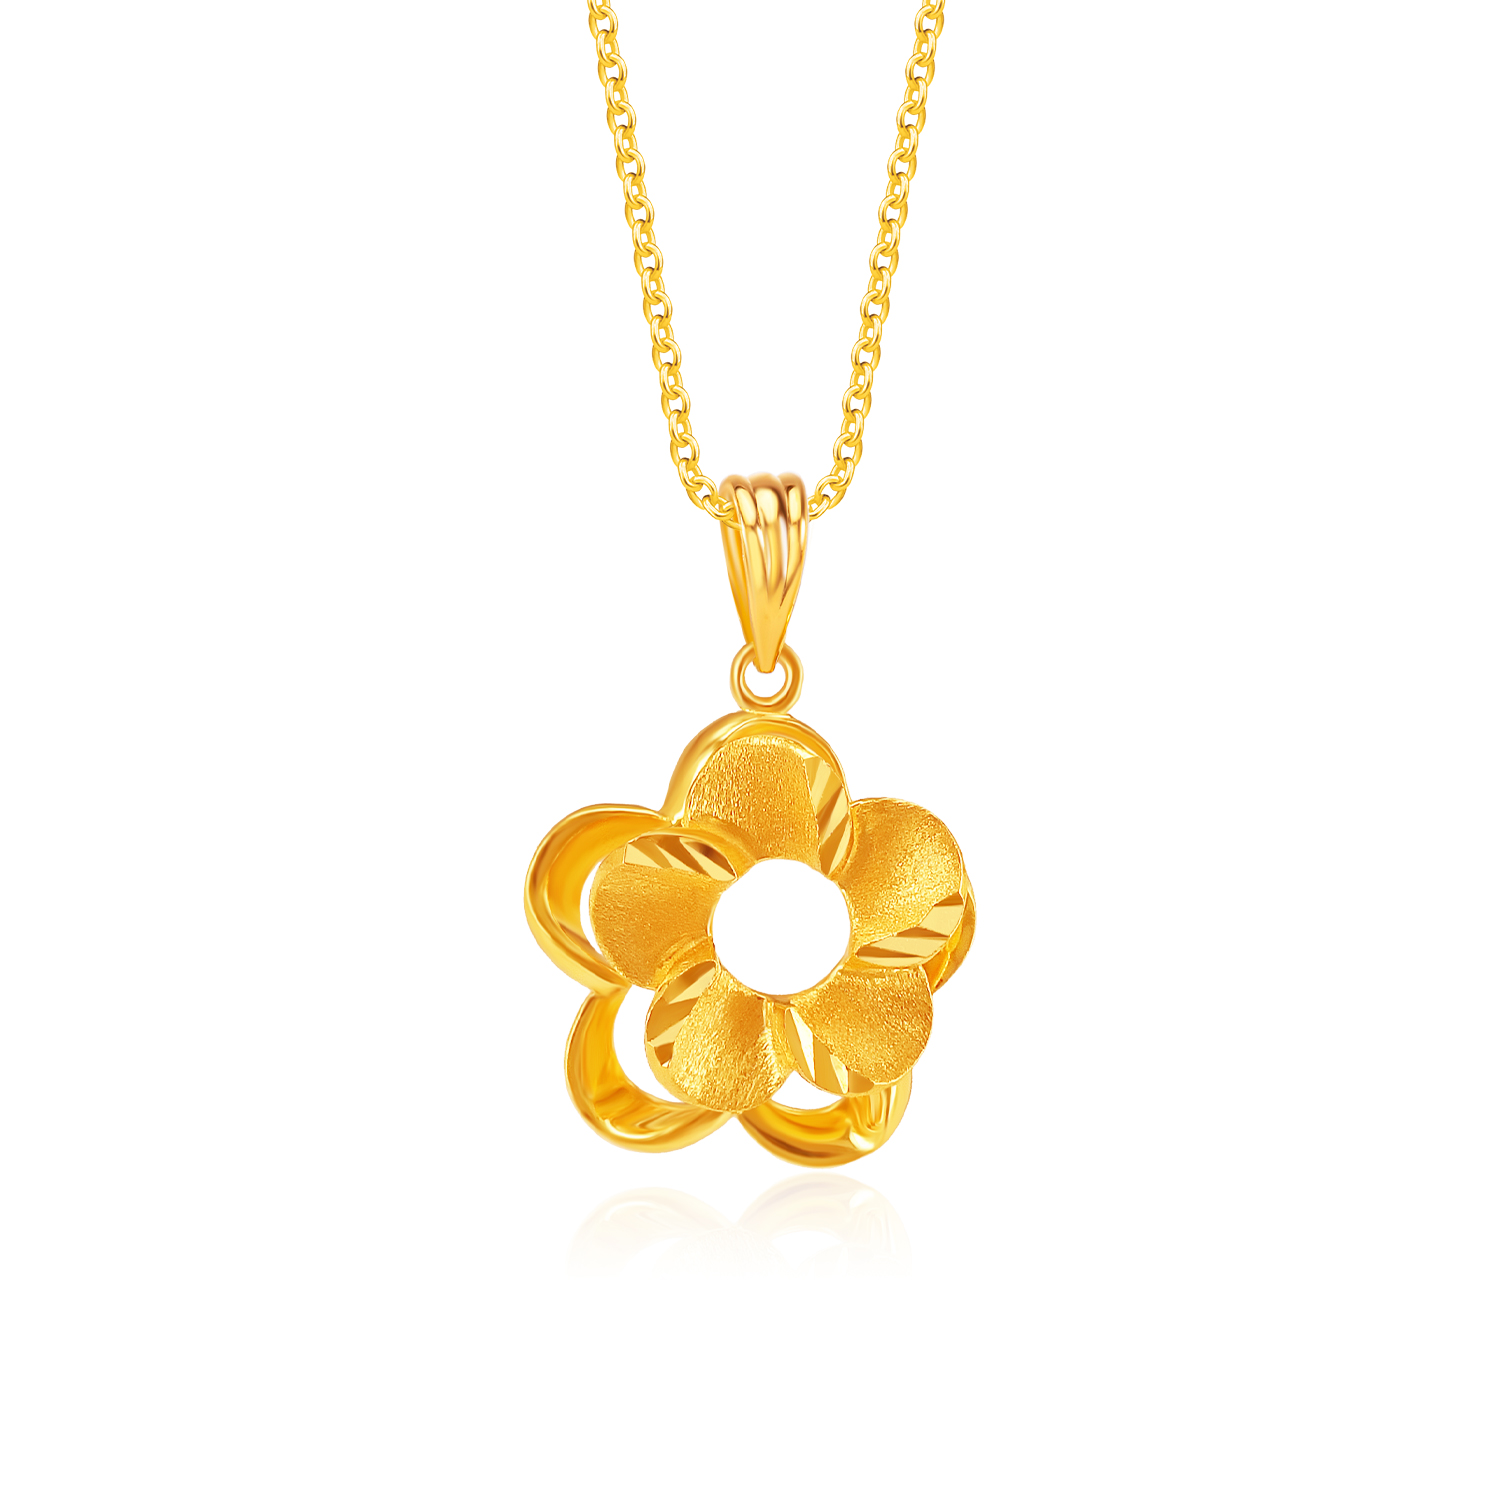 SK 916 All That Blooms Gold Pendant